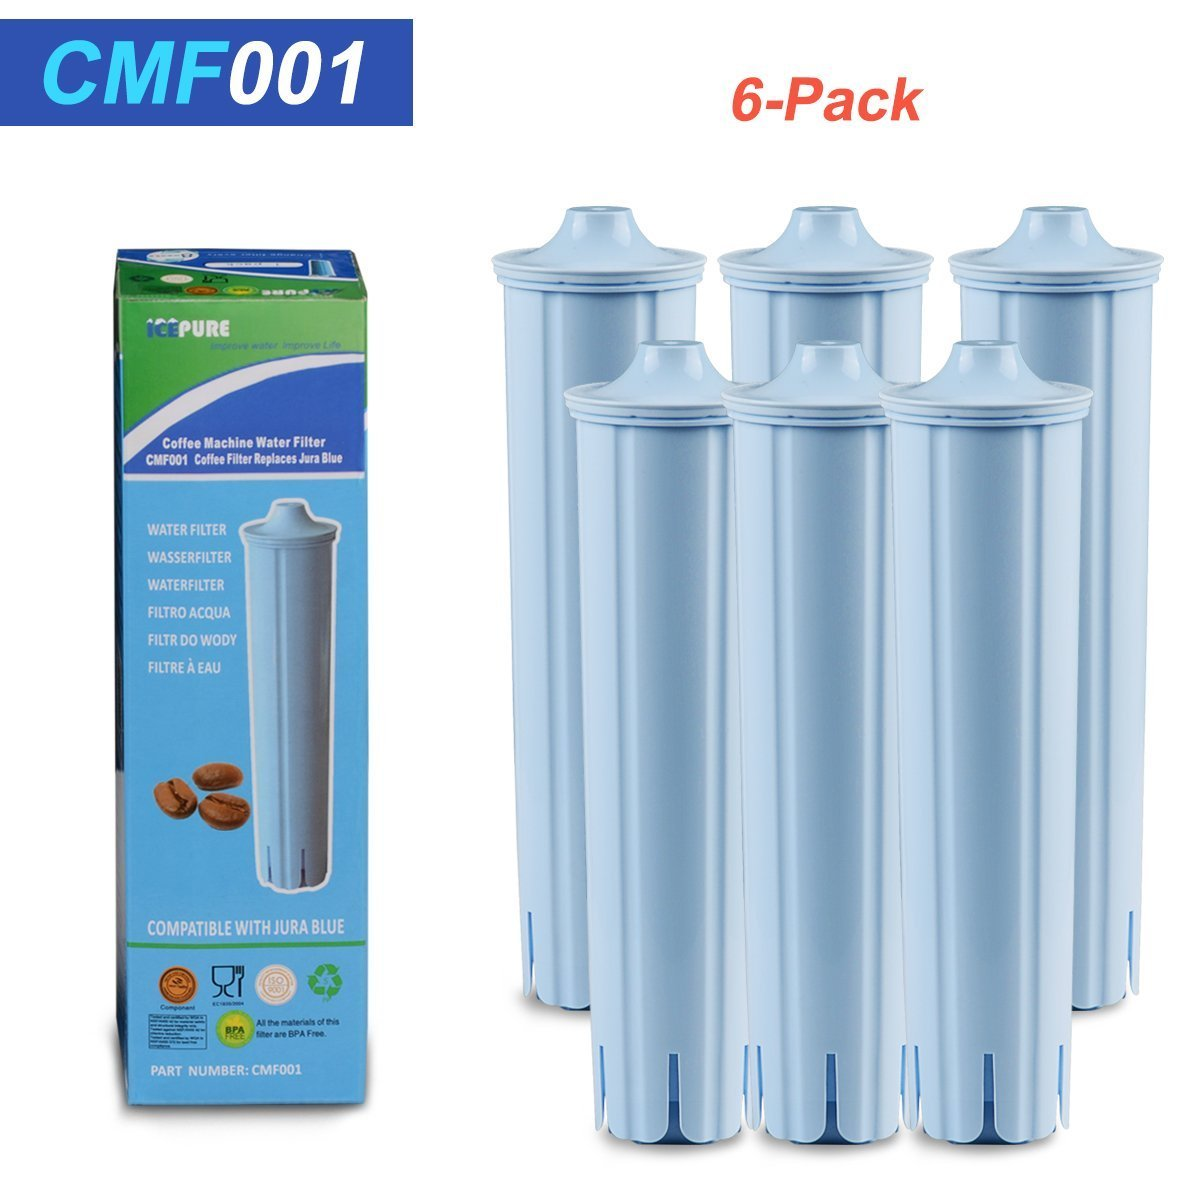 (6 Pack) Jura Clearyl Blue Compatible Coffee Machine Water Filter Compatible With C5, C9 (2nd Gen), J9, Z7, ENA 1, ENA 3, ENA 5, ENA, ENA 9 Jura Espresso Impressa F8, F7, C60, A1, A5, A7, A9, by ICEPURE